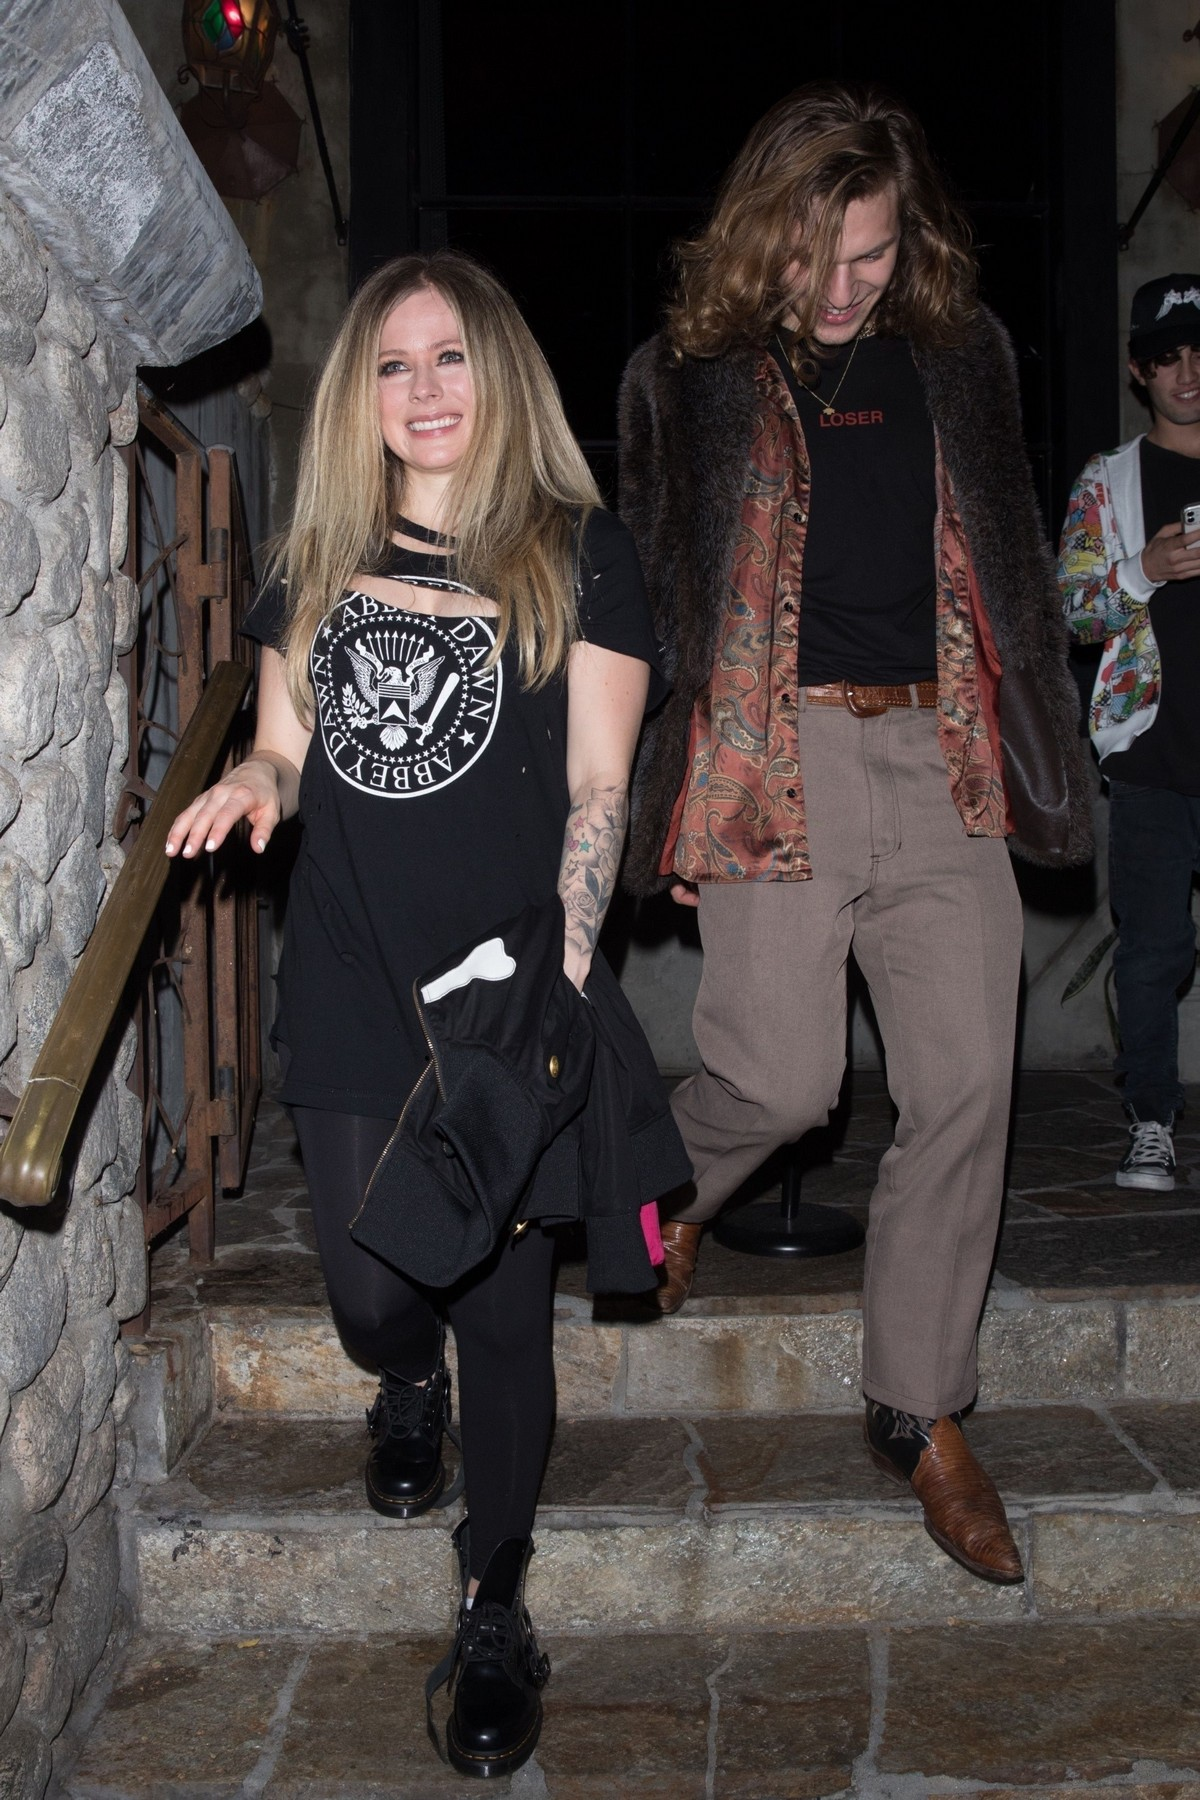 Avril Lavigne and G-Eazy Party at Birthday Bash of G-Eazy's at Boheme in West Hollywood 2019/11/20 8